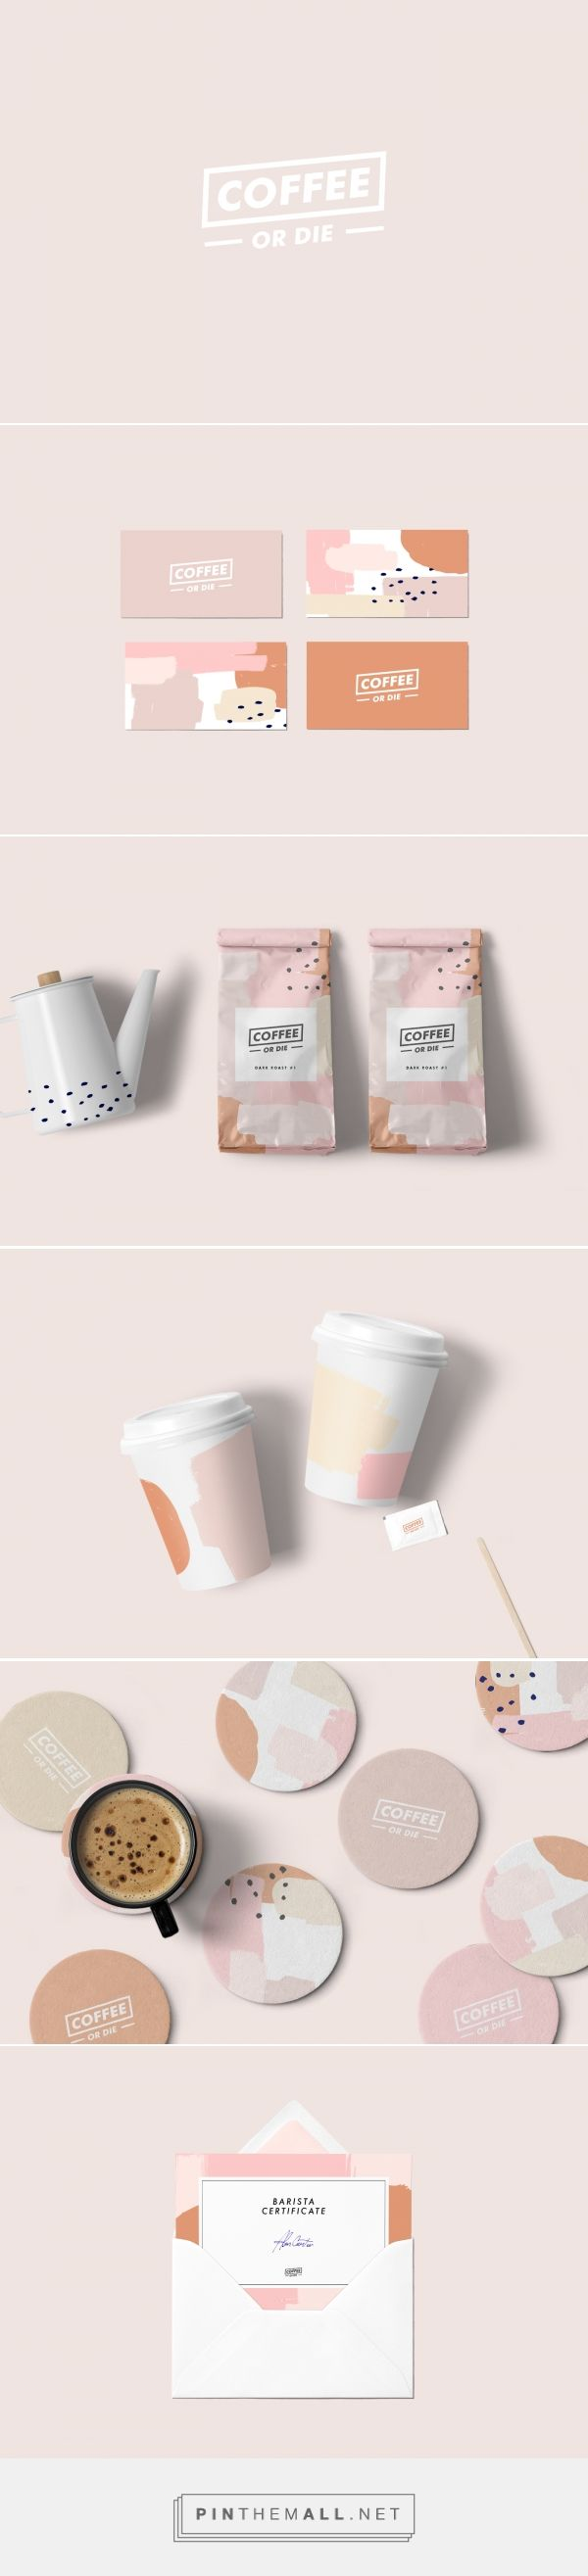 Coffee or Die Branding by Fernanda Meotti | Fivestar Branding Agency – Design and Branding Agency & Curated Inspiration Gallery #coffee #branding #identity #design #designideas #designinspiration